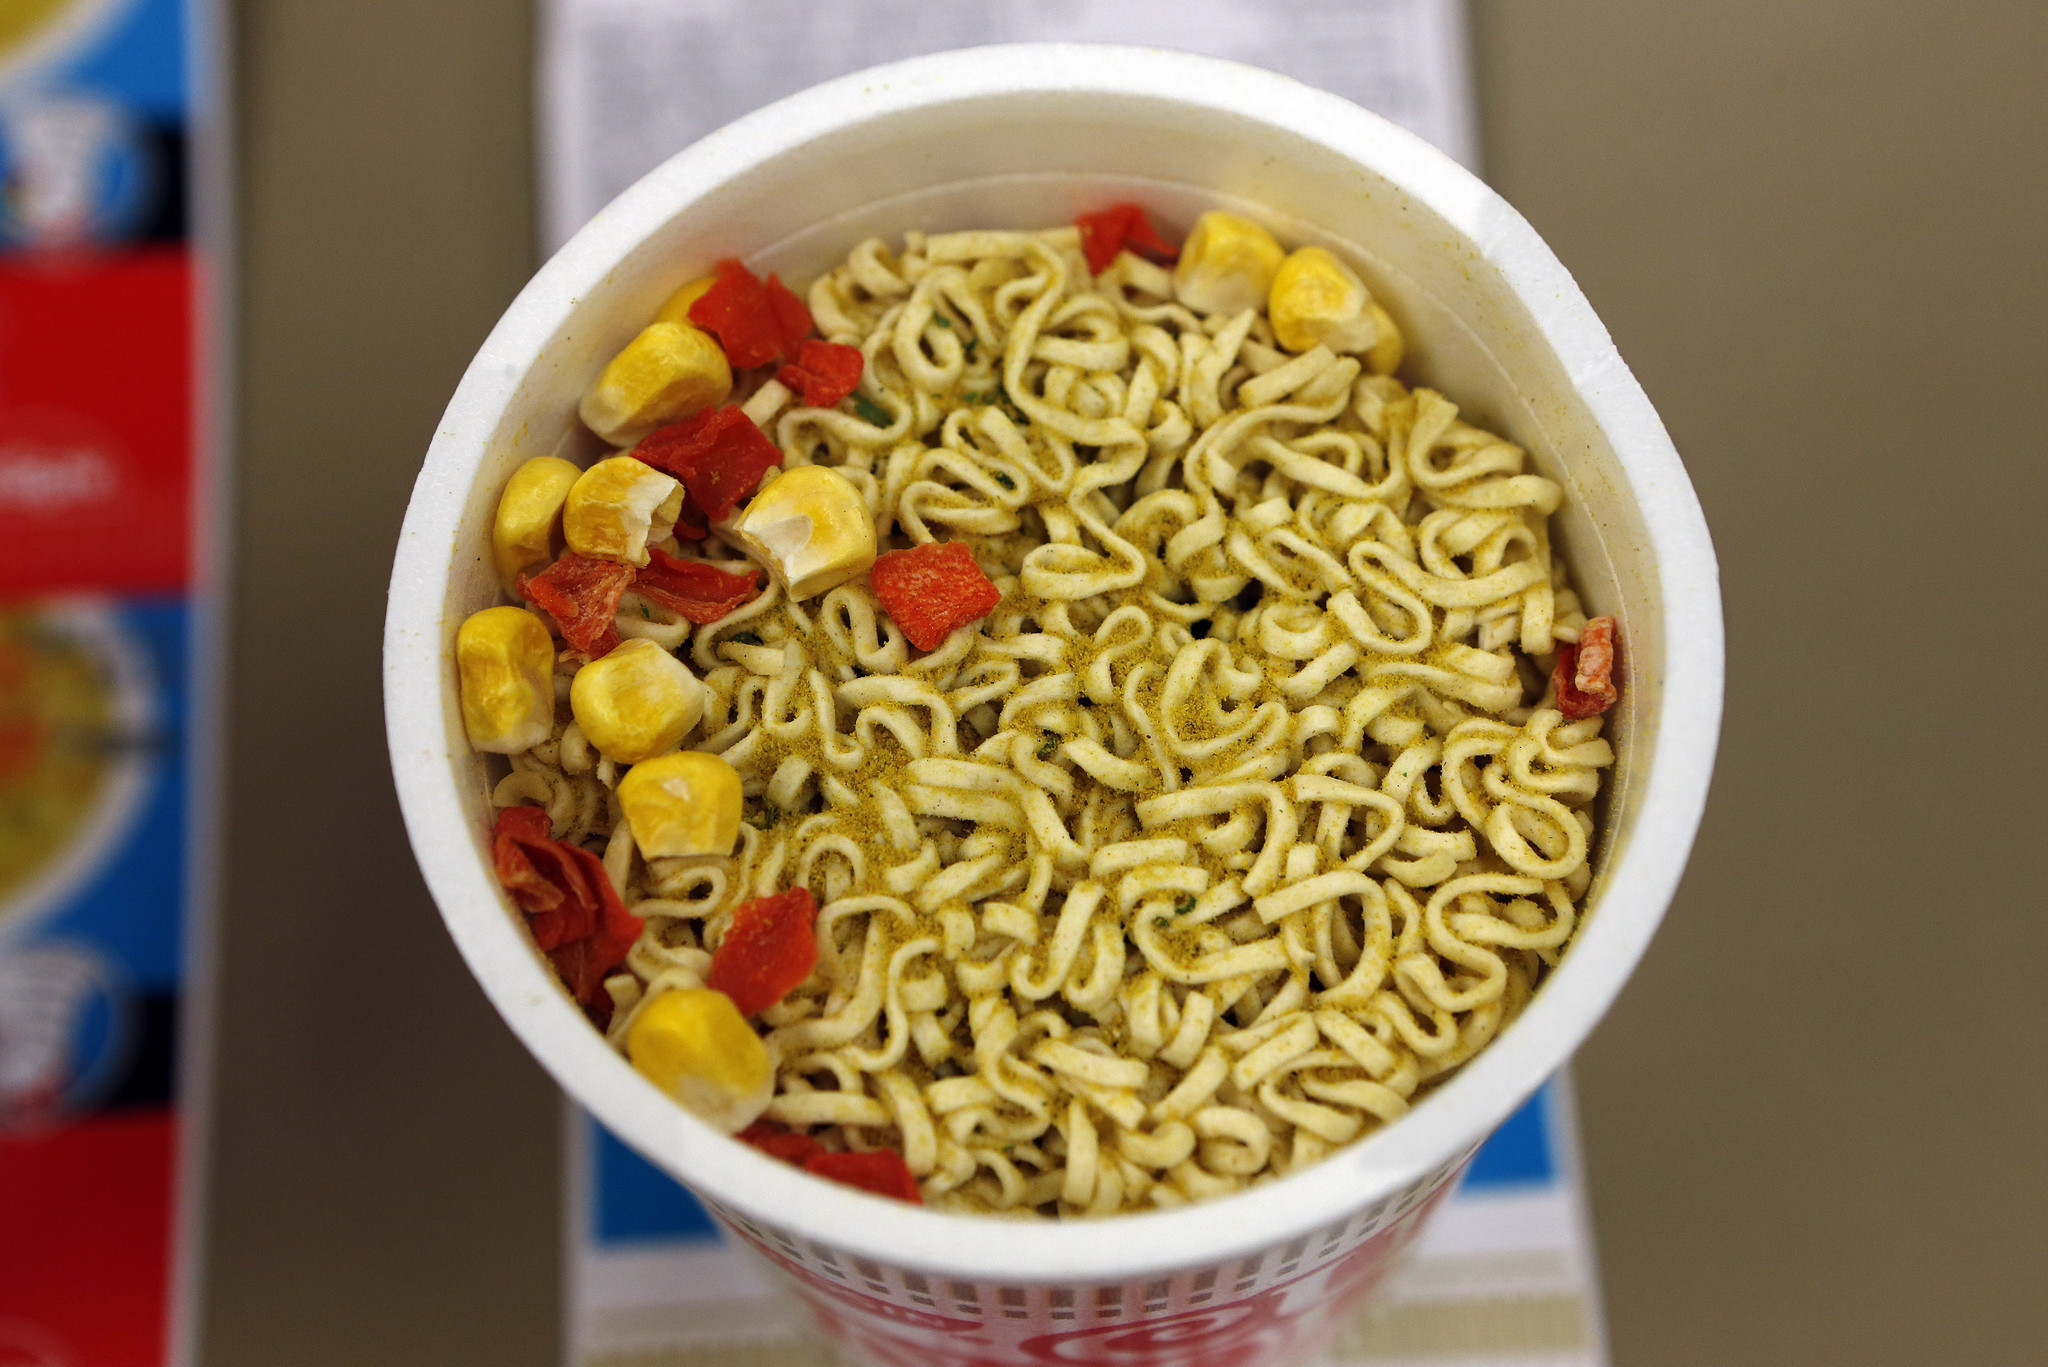 Healthy Cup Noodles  Cup Noodles changes its recipe for the first time ever